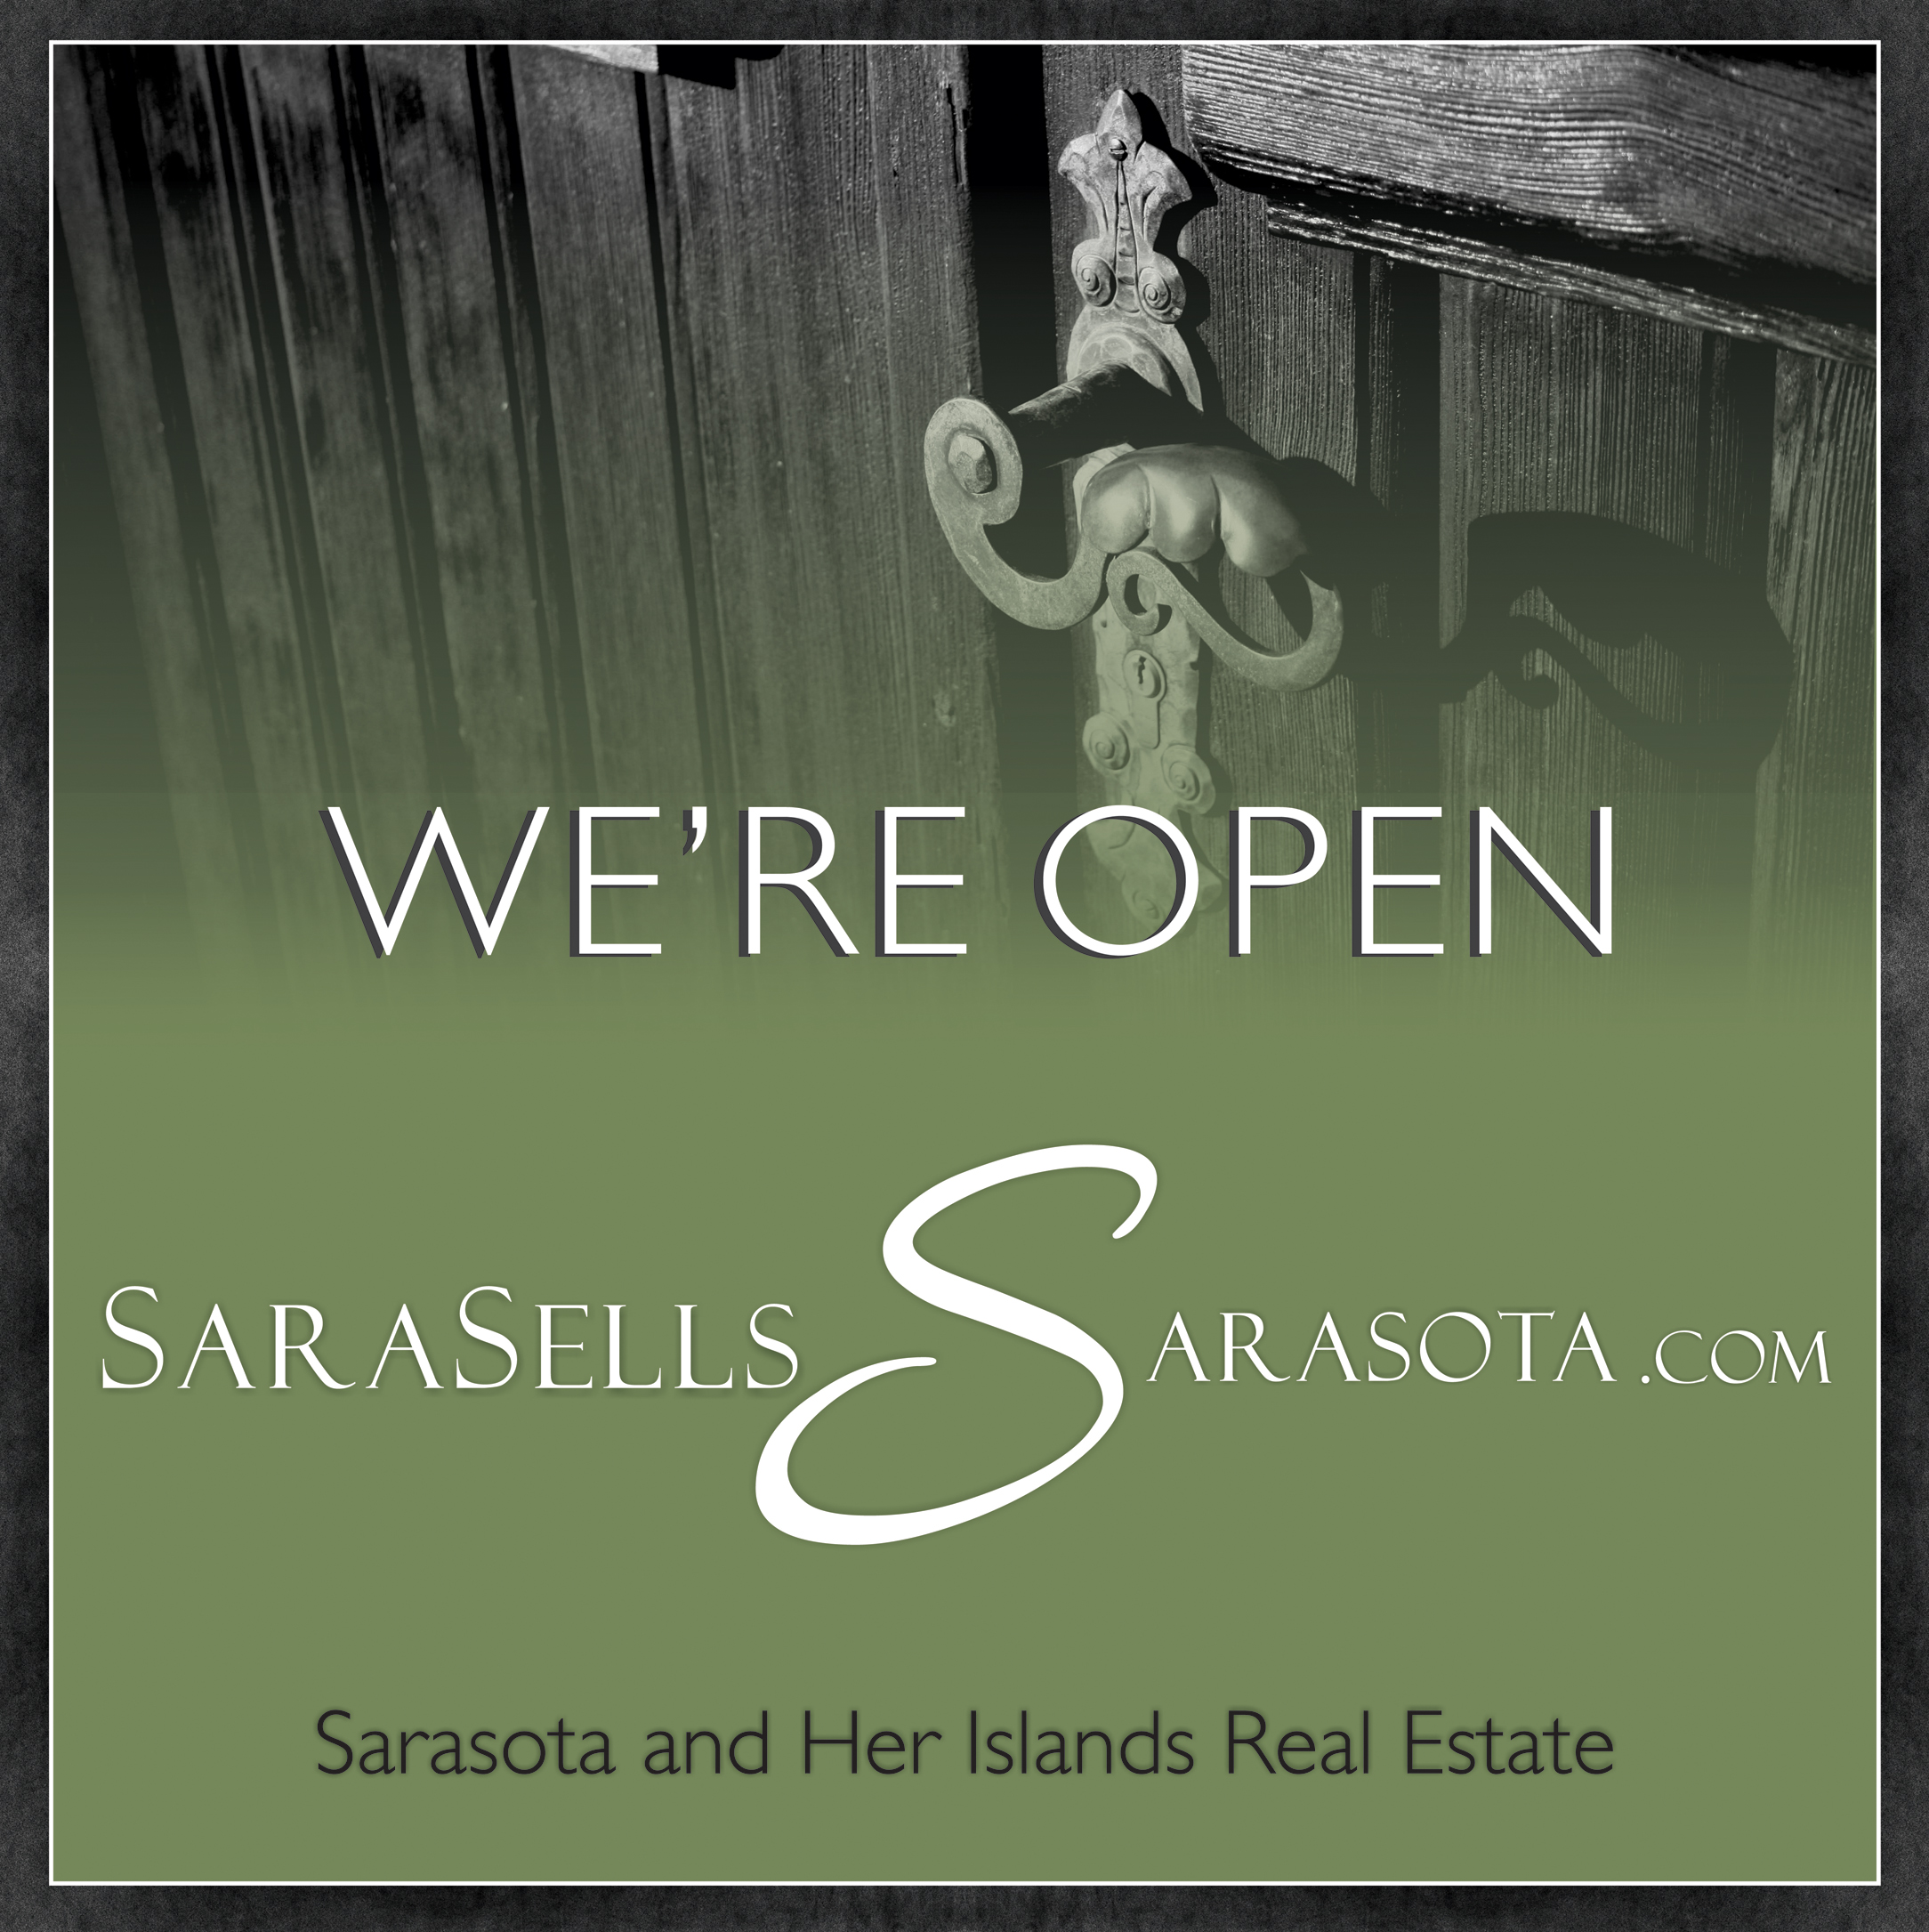 SaraSellsSarasota.com Open for Business